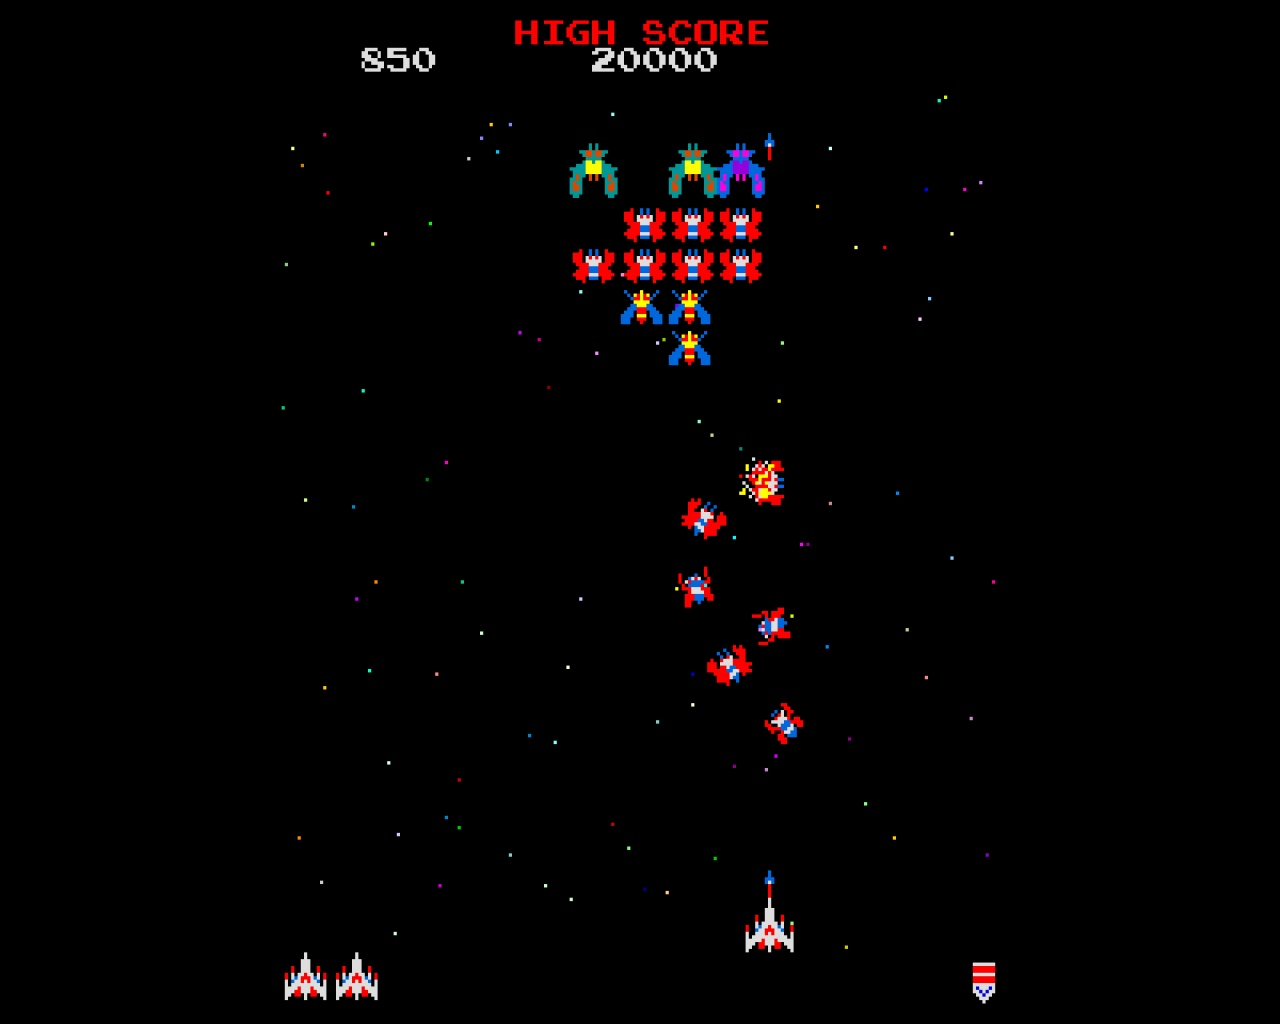 1280x1024 Retro Galaga desktop PC and Mac wallpaper 1280x1024